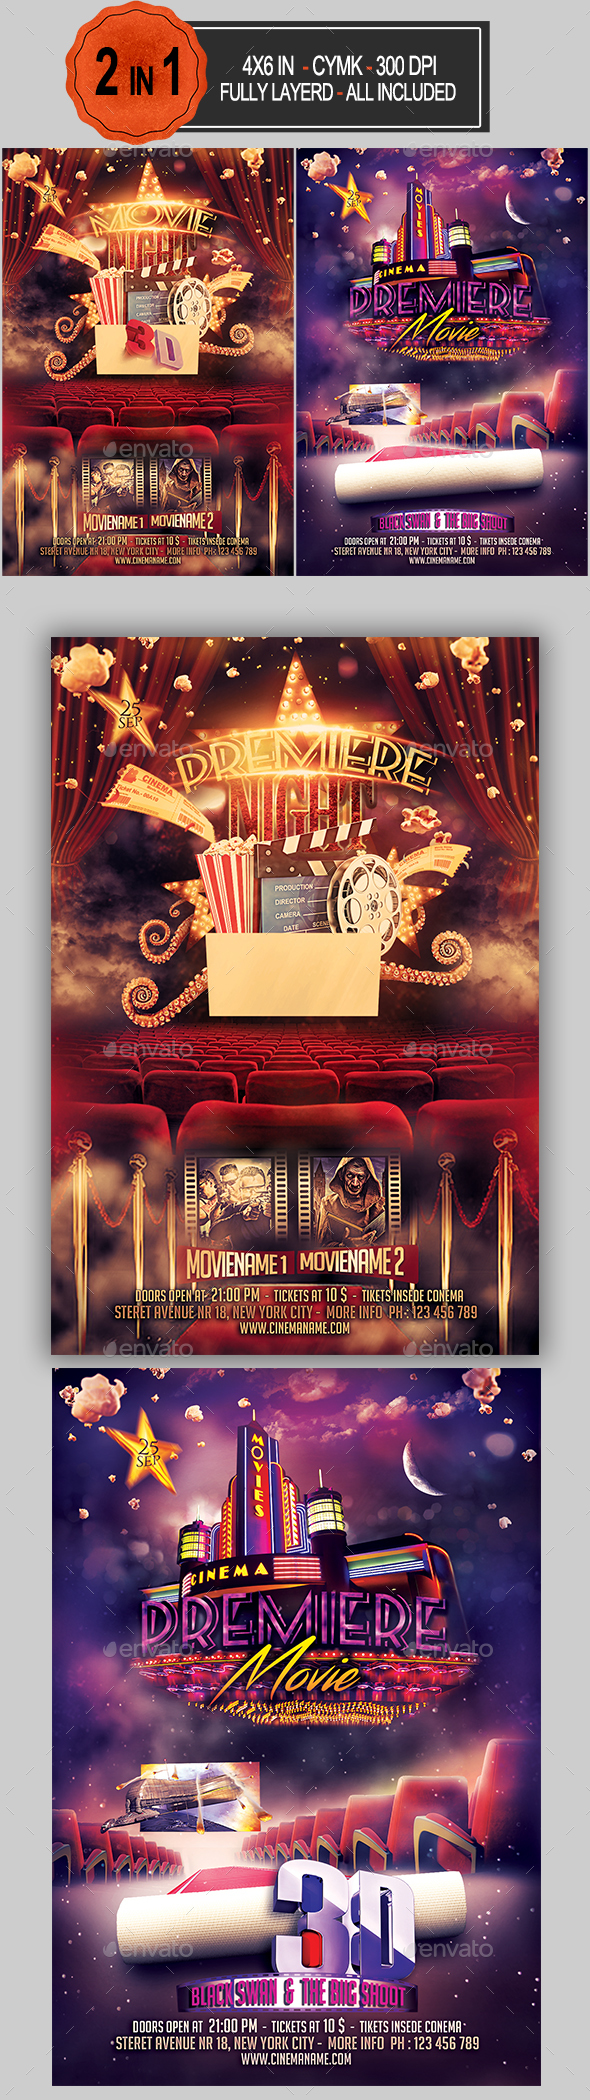 Premiere Movie Flyer Bundle - Miscellaneous Events